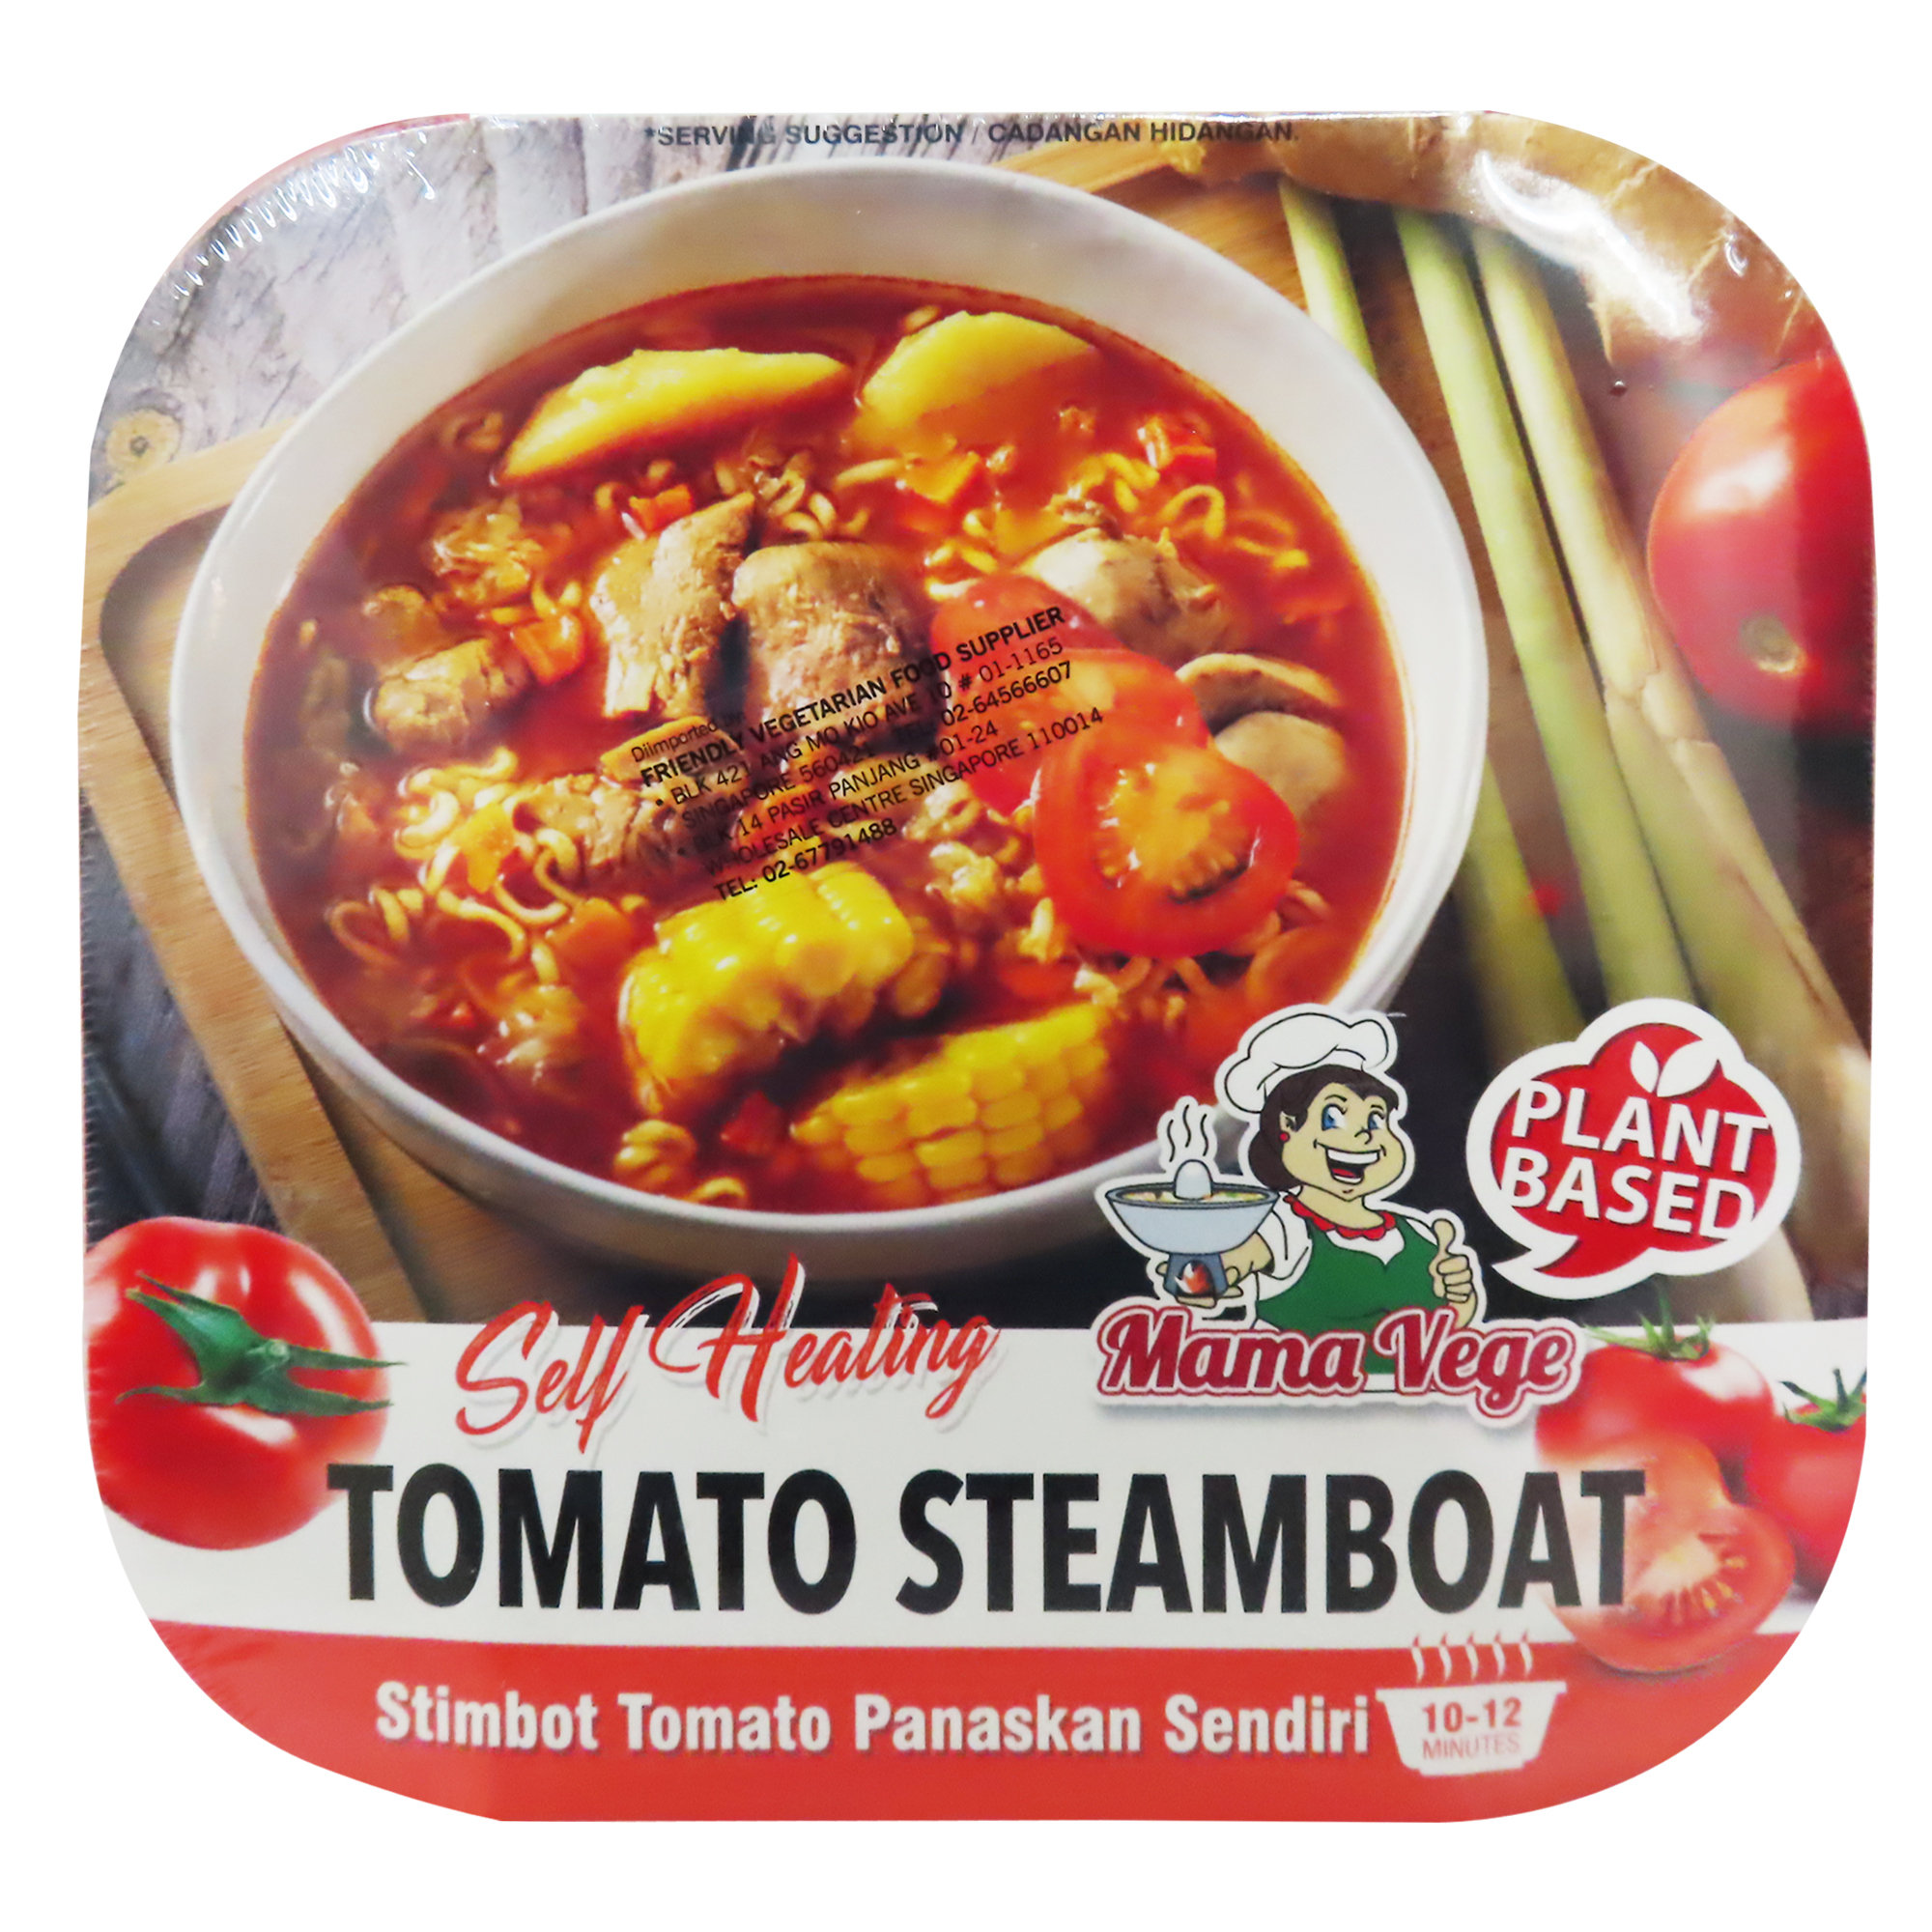 Image Tomato steamboat 懒人番茄火锅 340grams